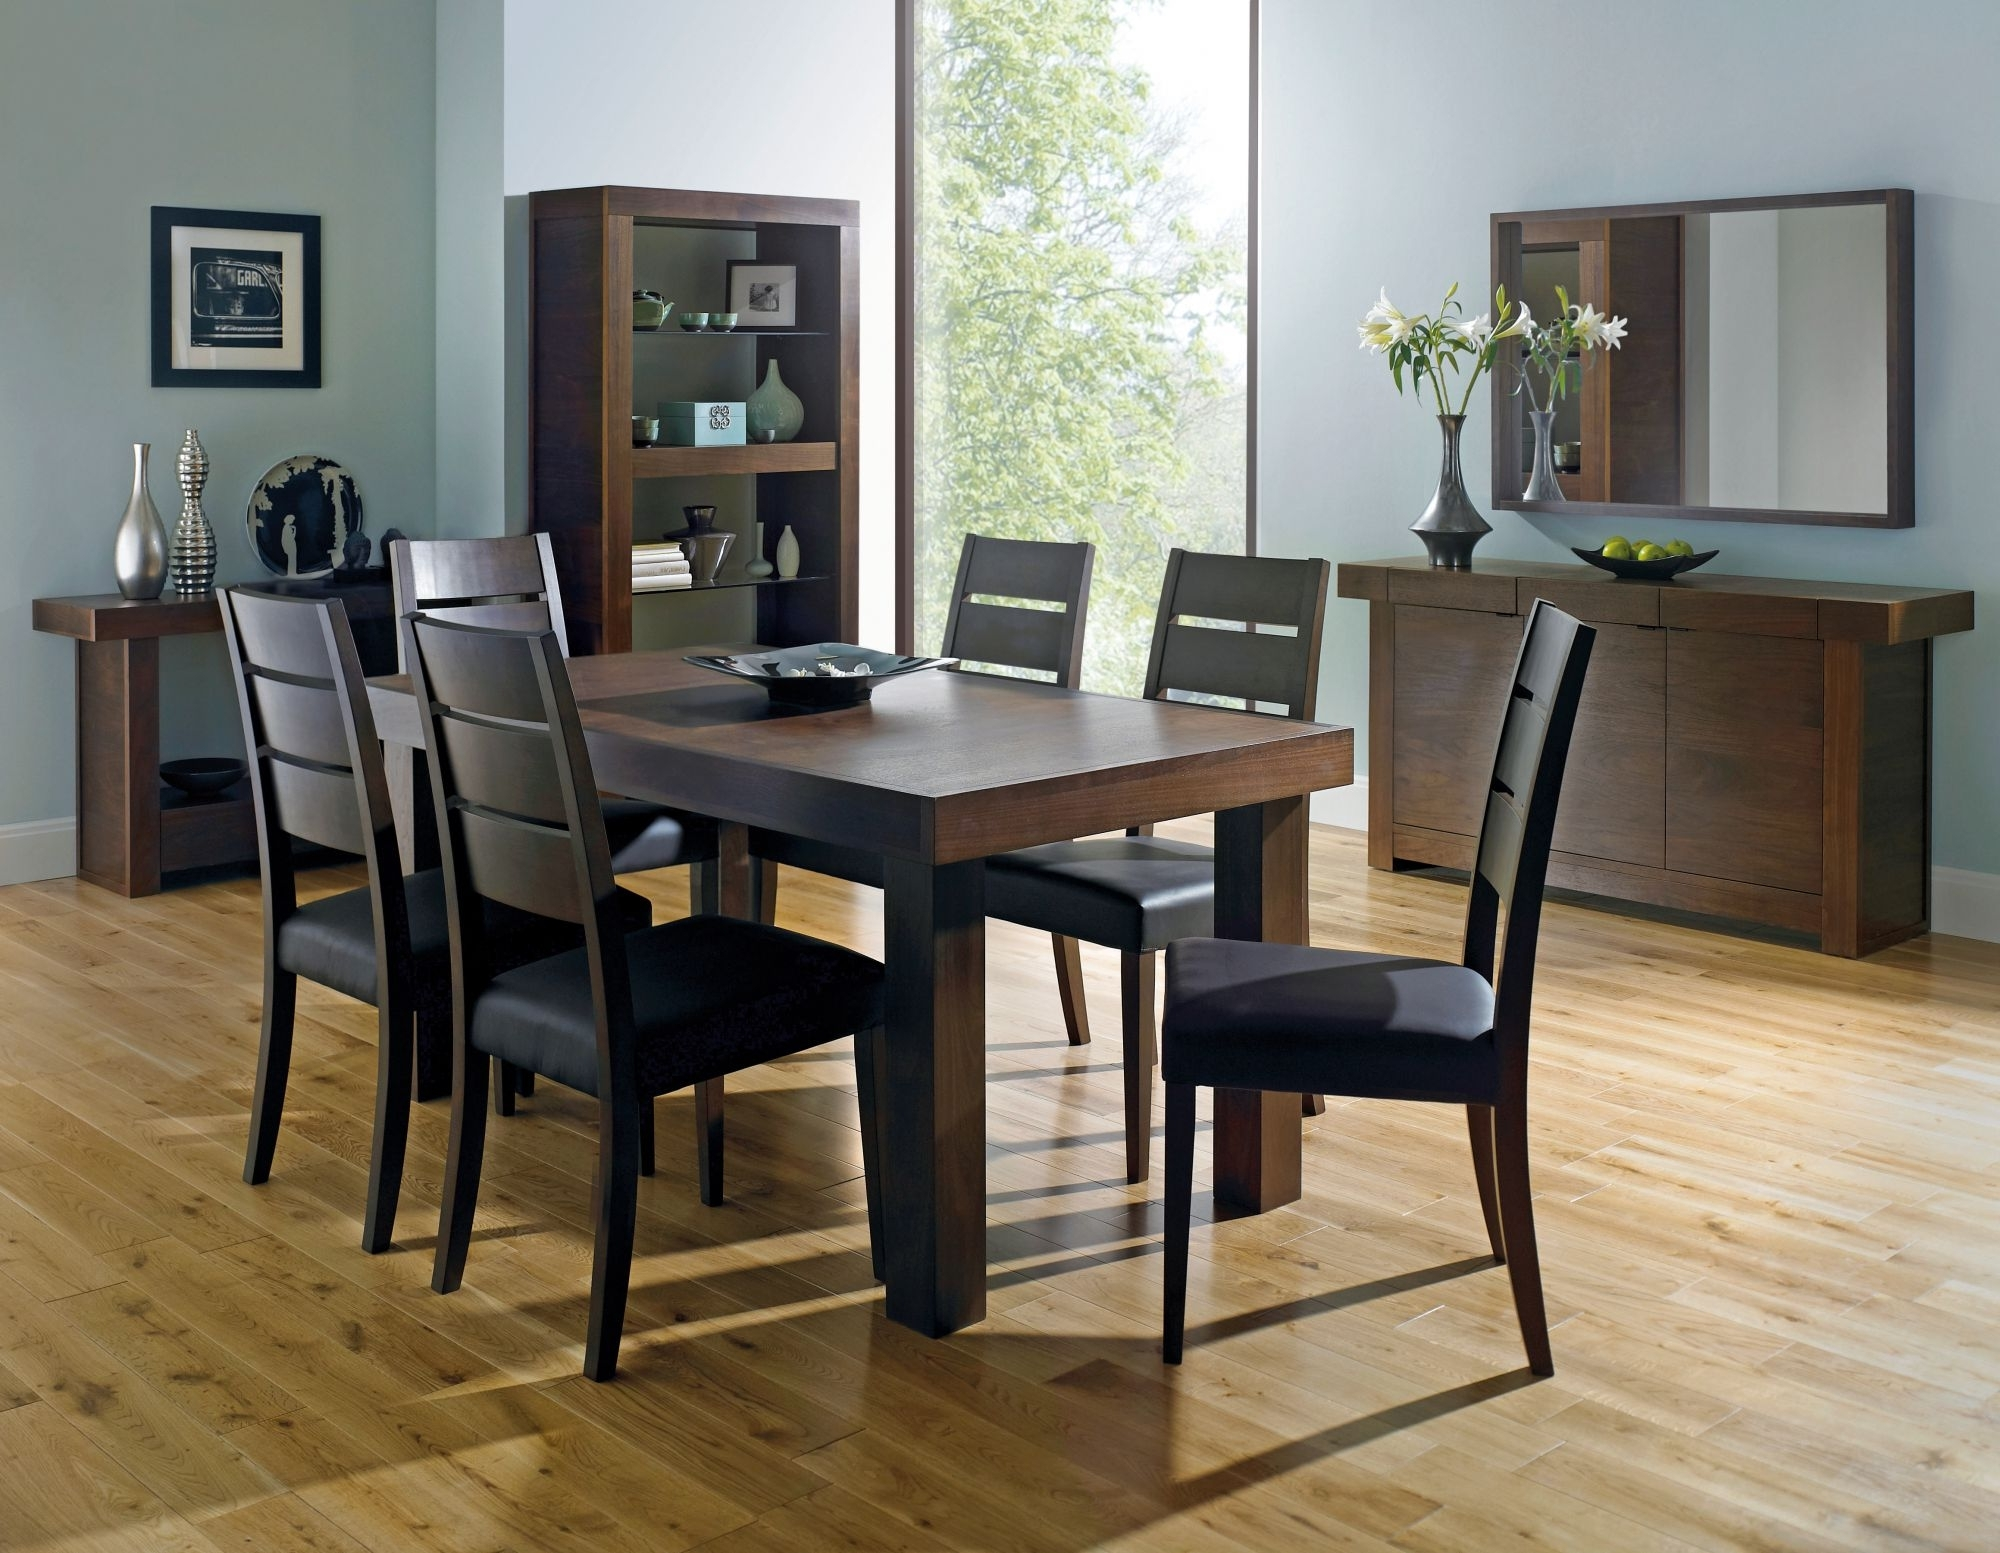 Bentley Designs Akita Walnut 4 6 End Extending Dining Table + 4 With Regard To Current Walnut Dining Table And 6 Chairs (View 19 of 25)